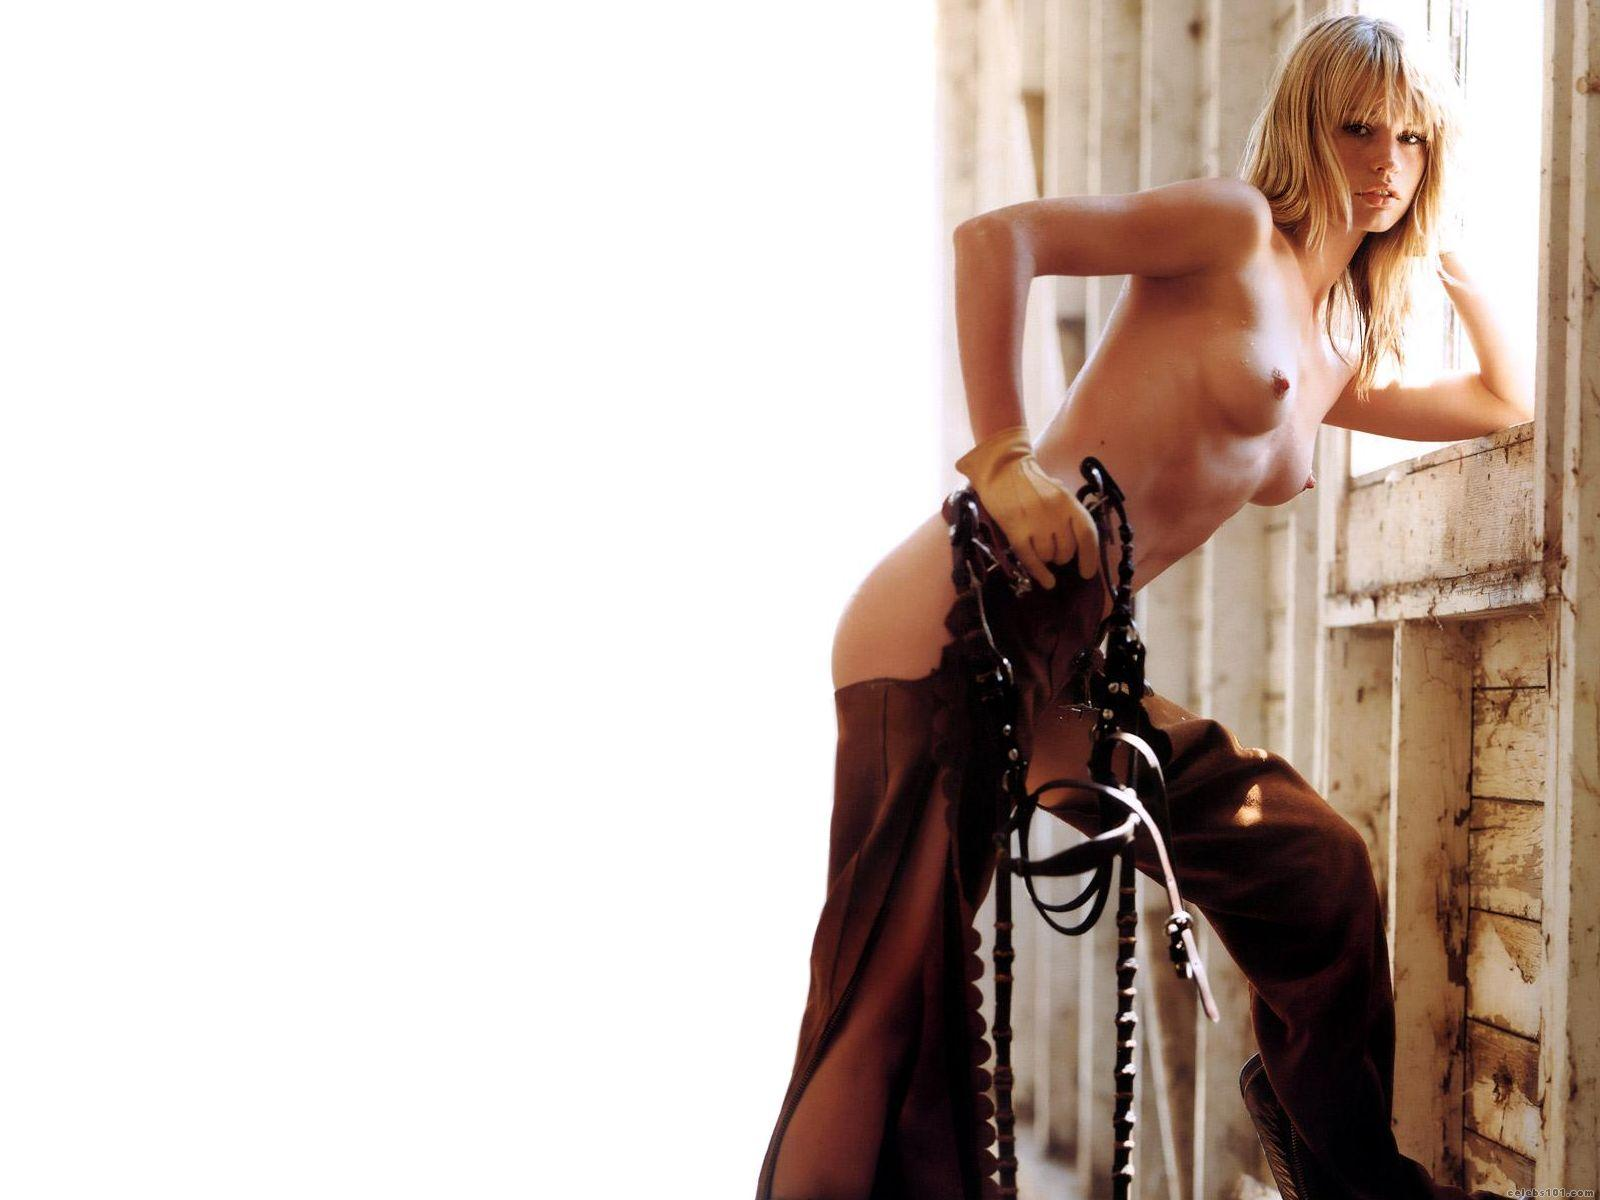 cameron richardson wallpaper